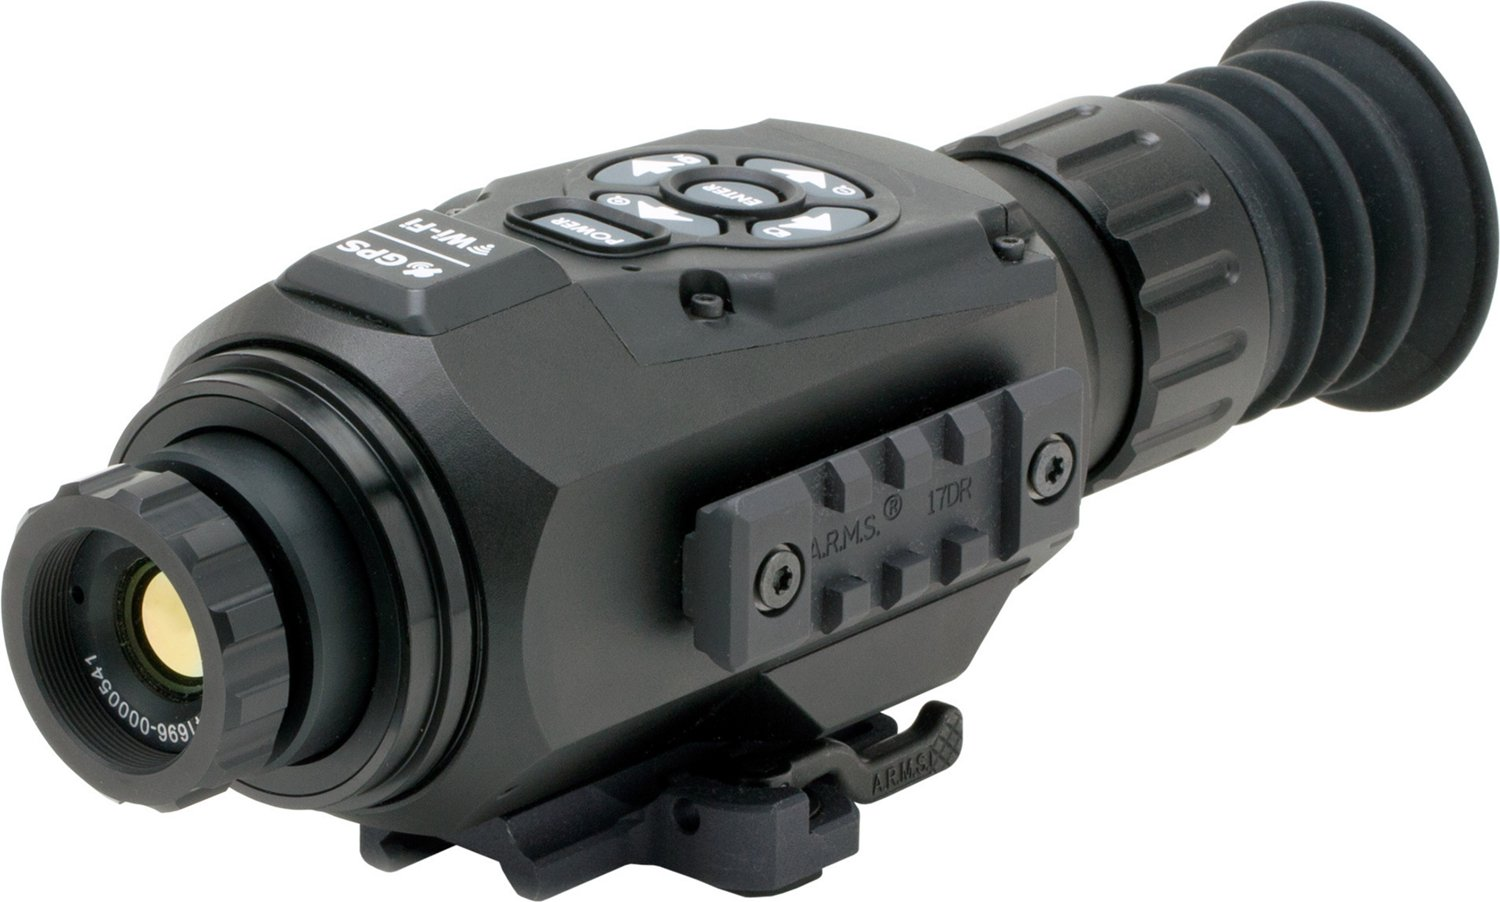 ATN ThOR Smart HD 1 - 10 x 19 Thermal Riflescope - view number 4